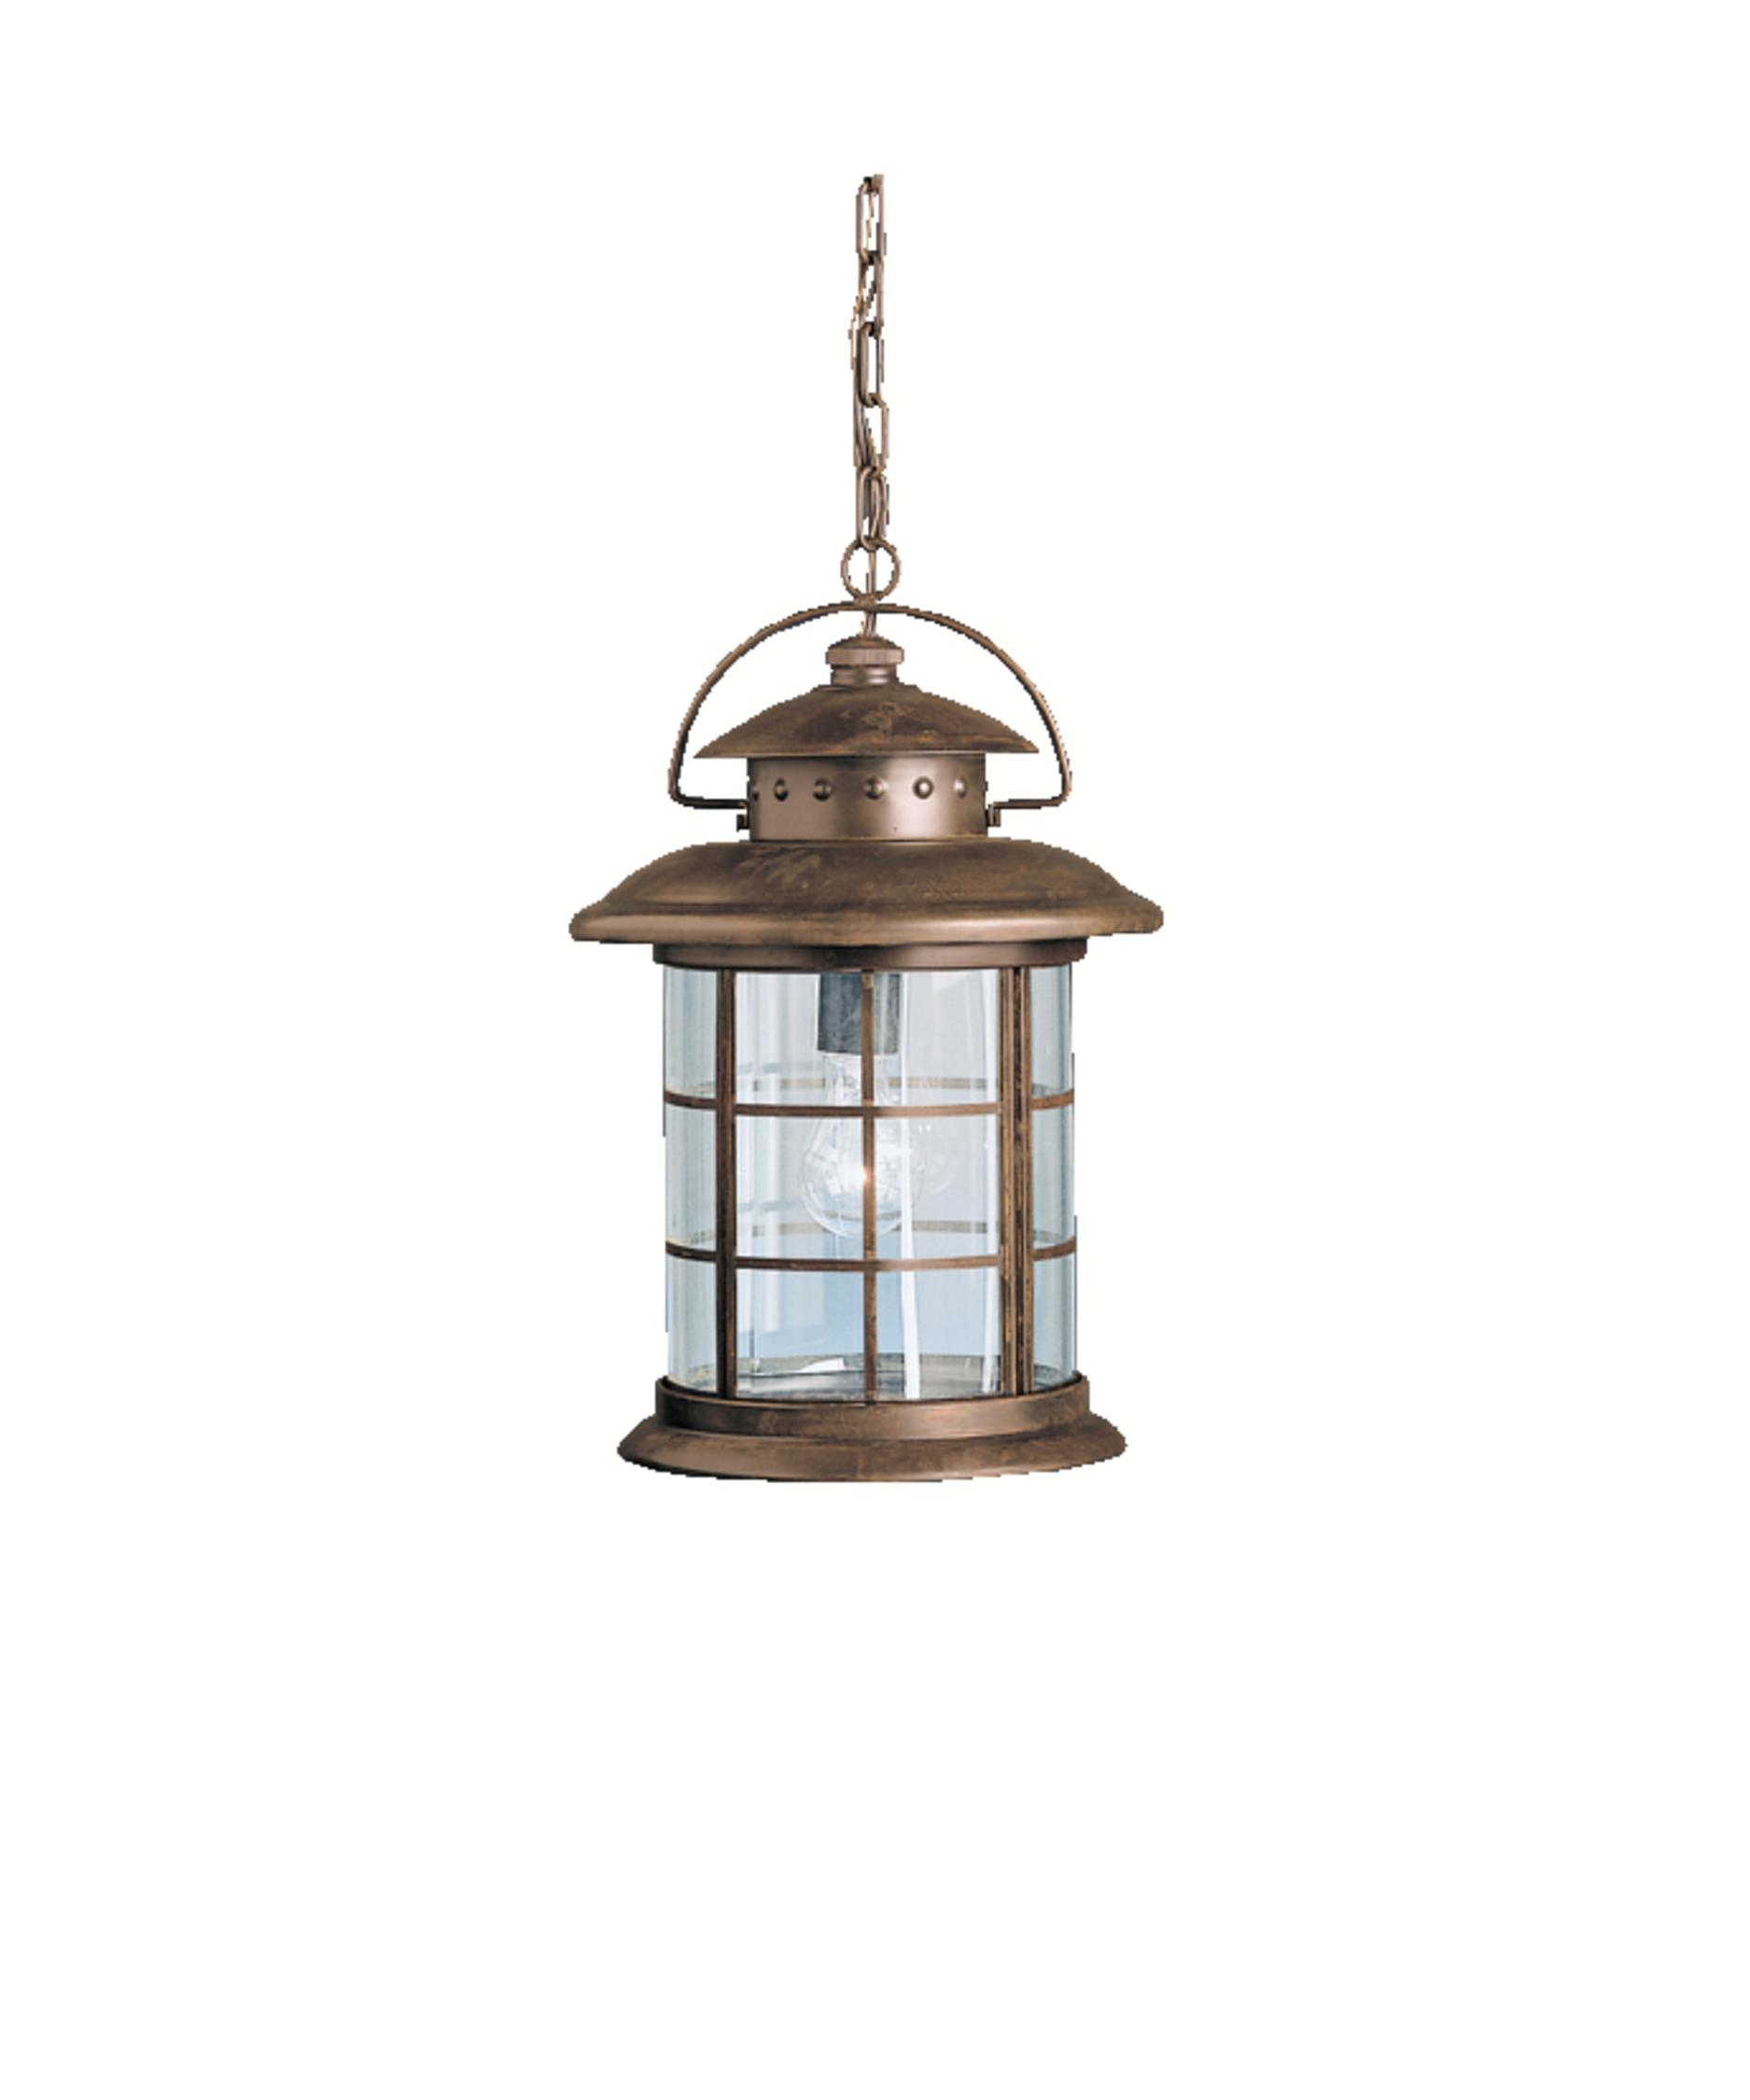 Outdoor hanging lamp - Shown In Rustic Finish And Clear Beveled Glass